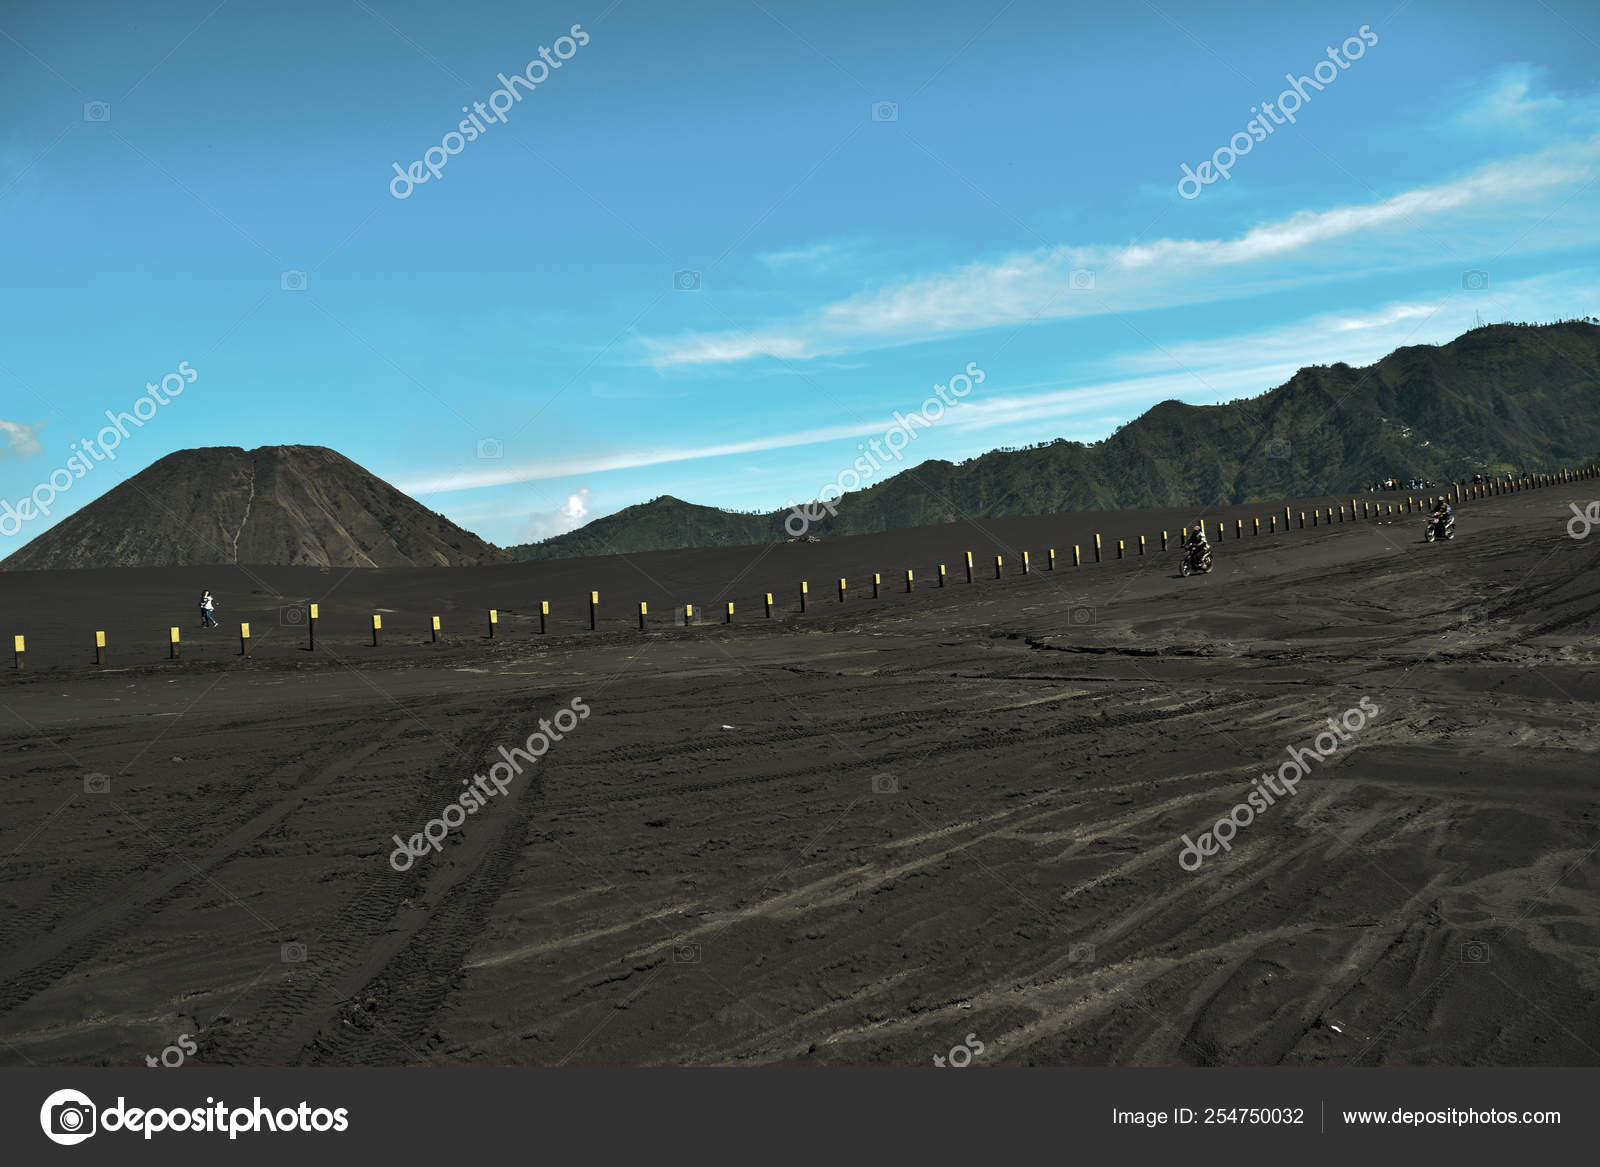 Malang East Java Indonesia April 2 2019 Unrecognized People Landscape Agricultural Field The Summer Season The Car Tracks On The Ground With A Dramatic Cloudy Sky Stock Editorial Photo C Olanstock 254750032